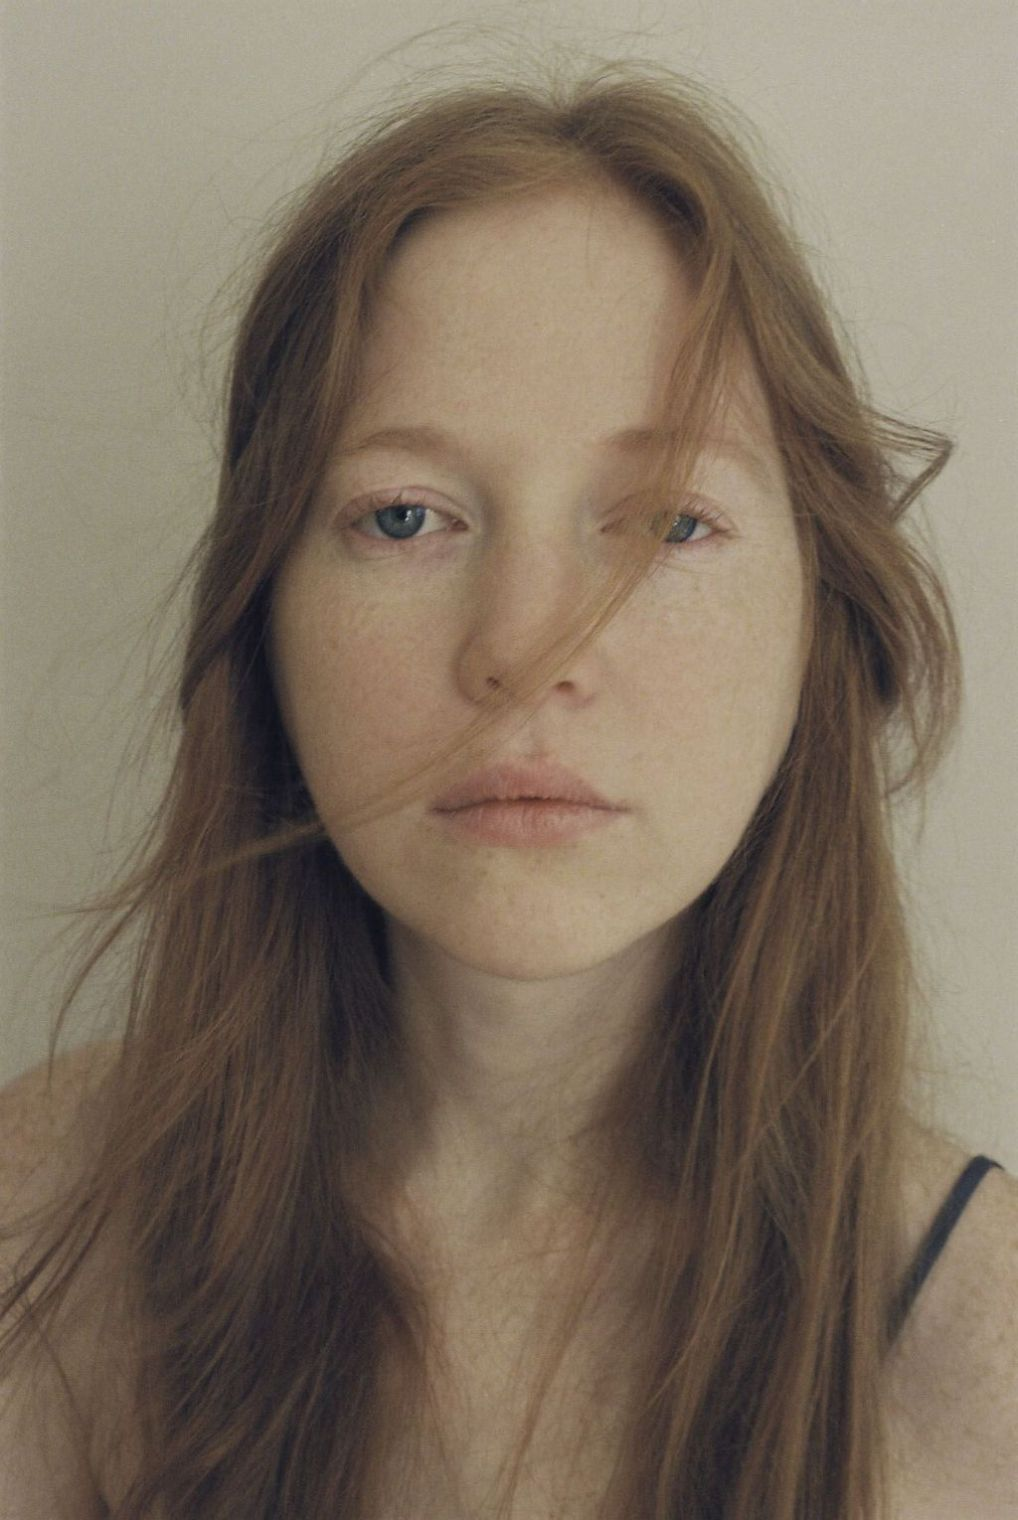 woman face freckles johanna-stickland without